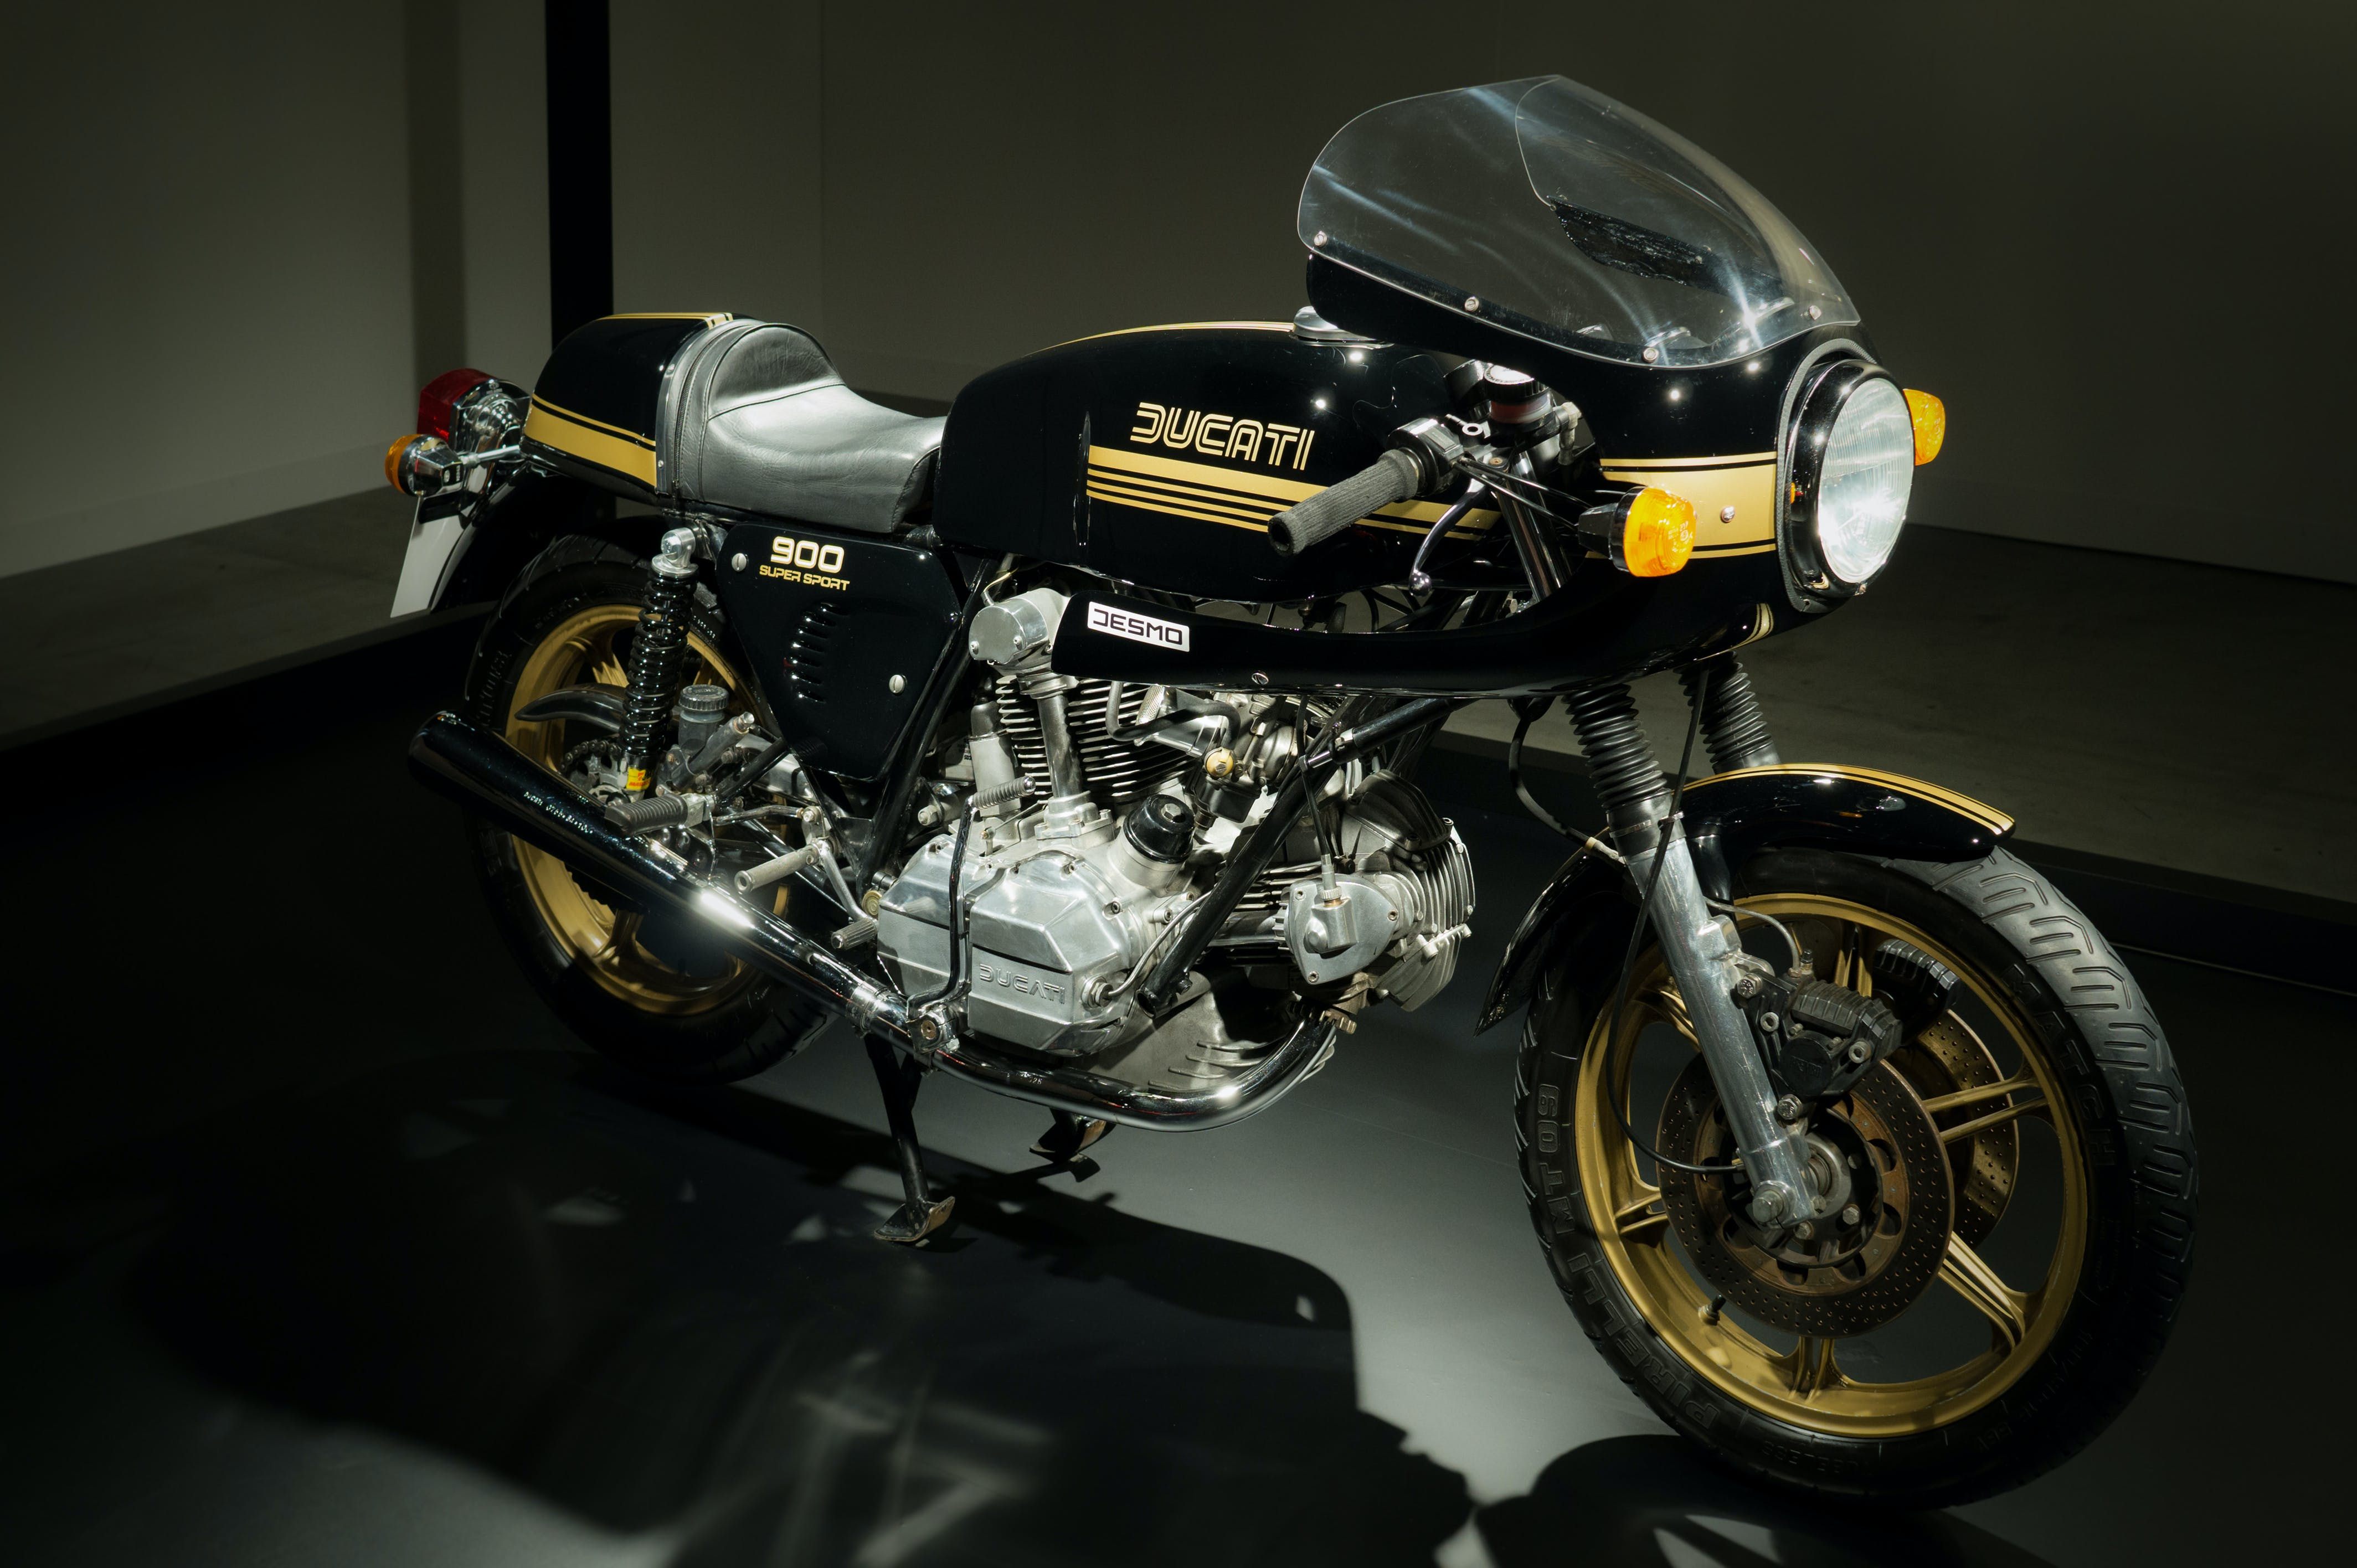 Black Ducati Cafe Racer Motorcycle